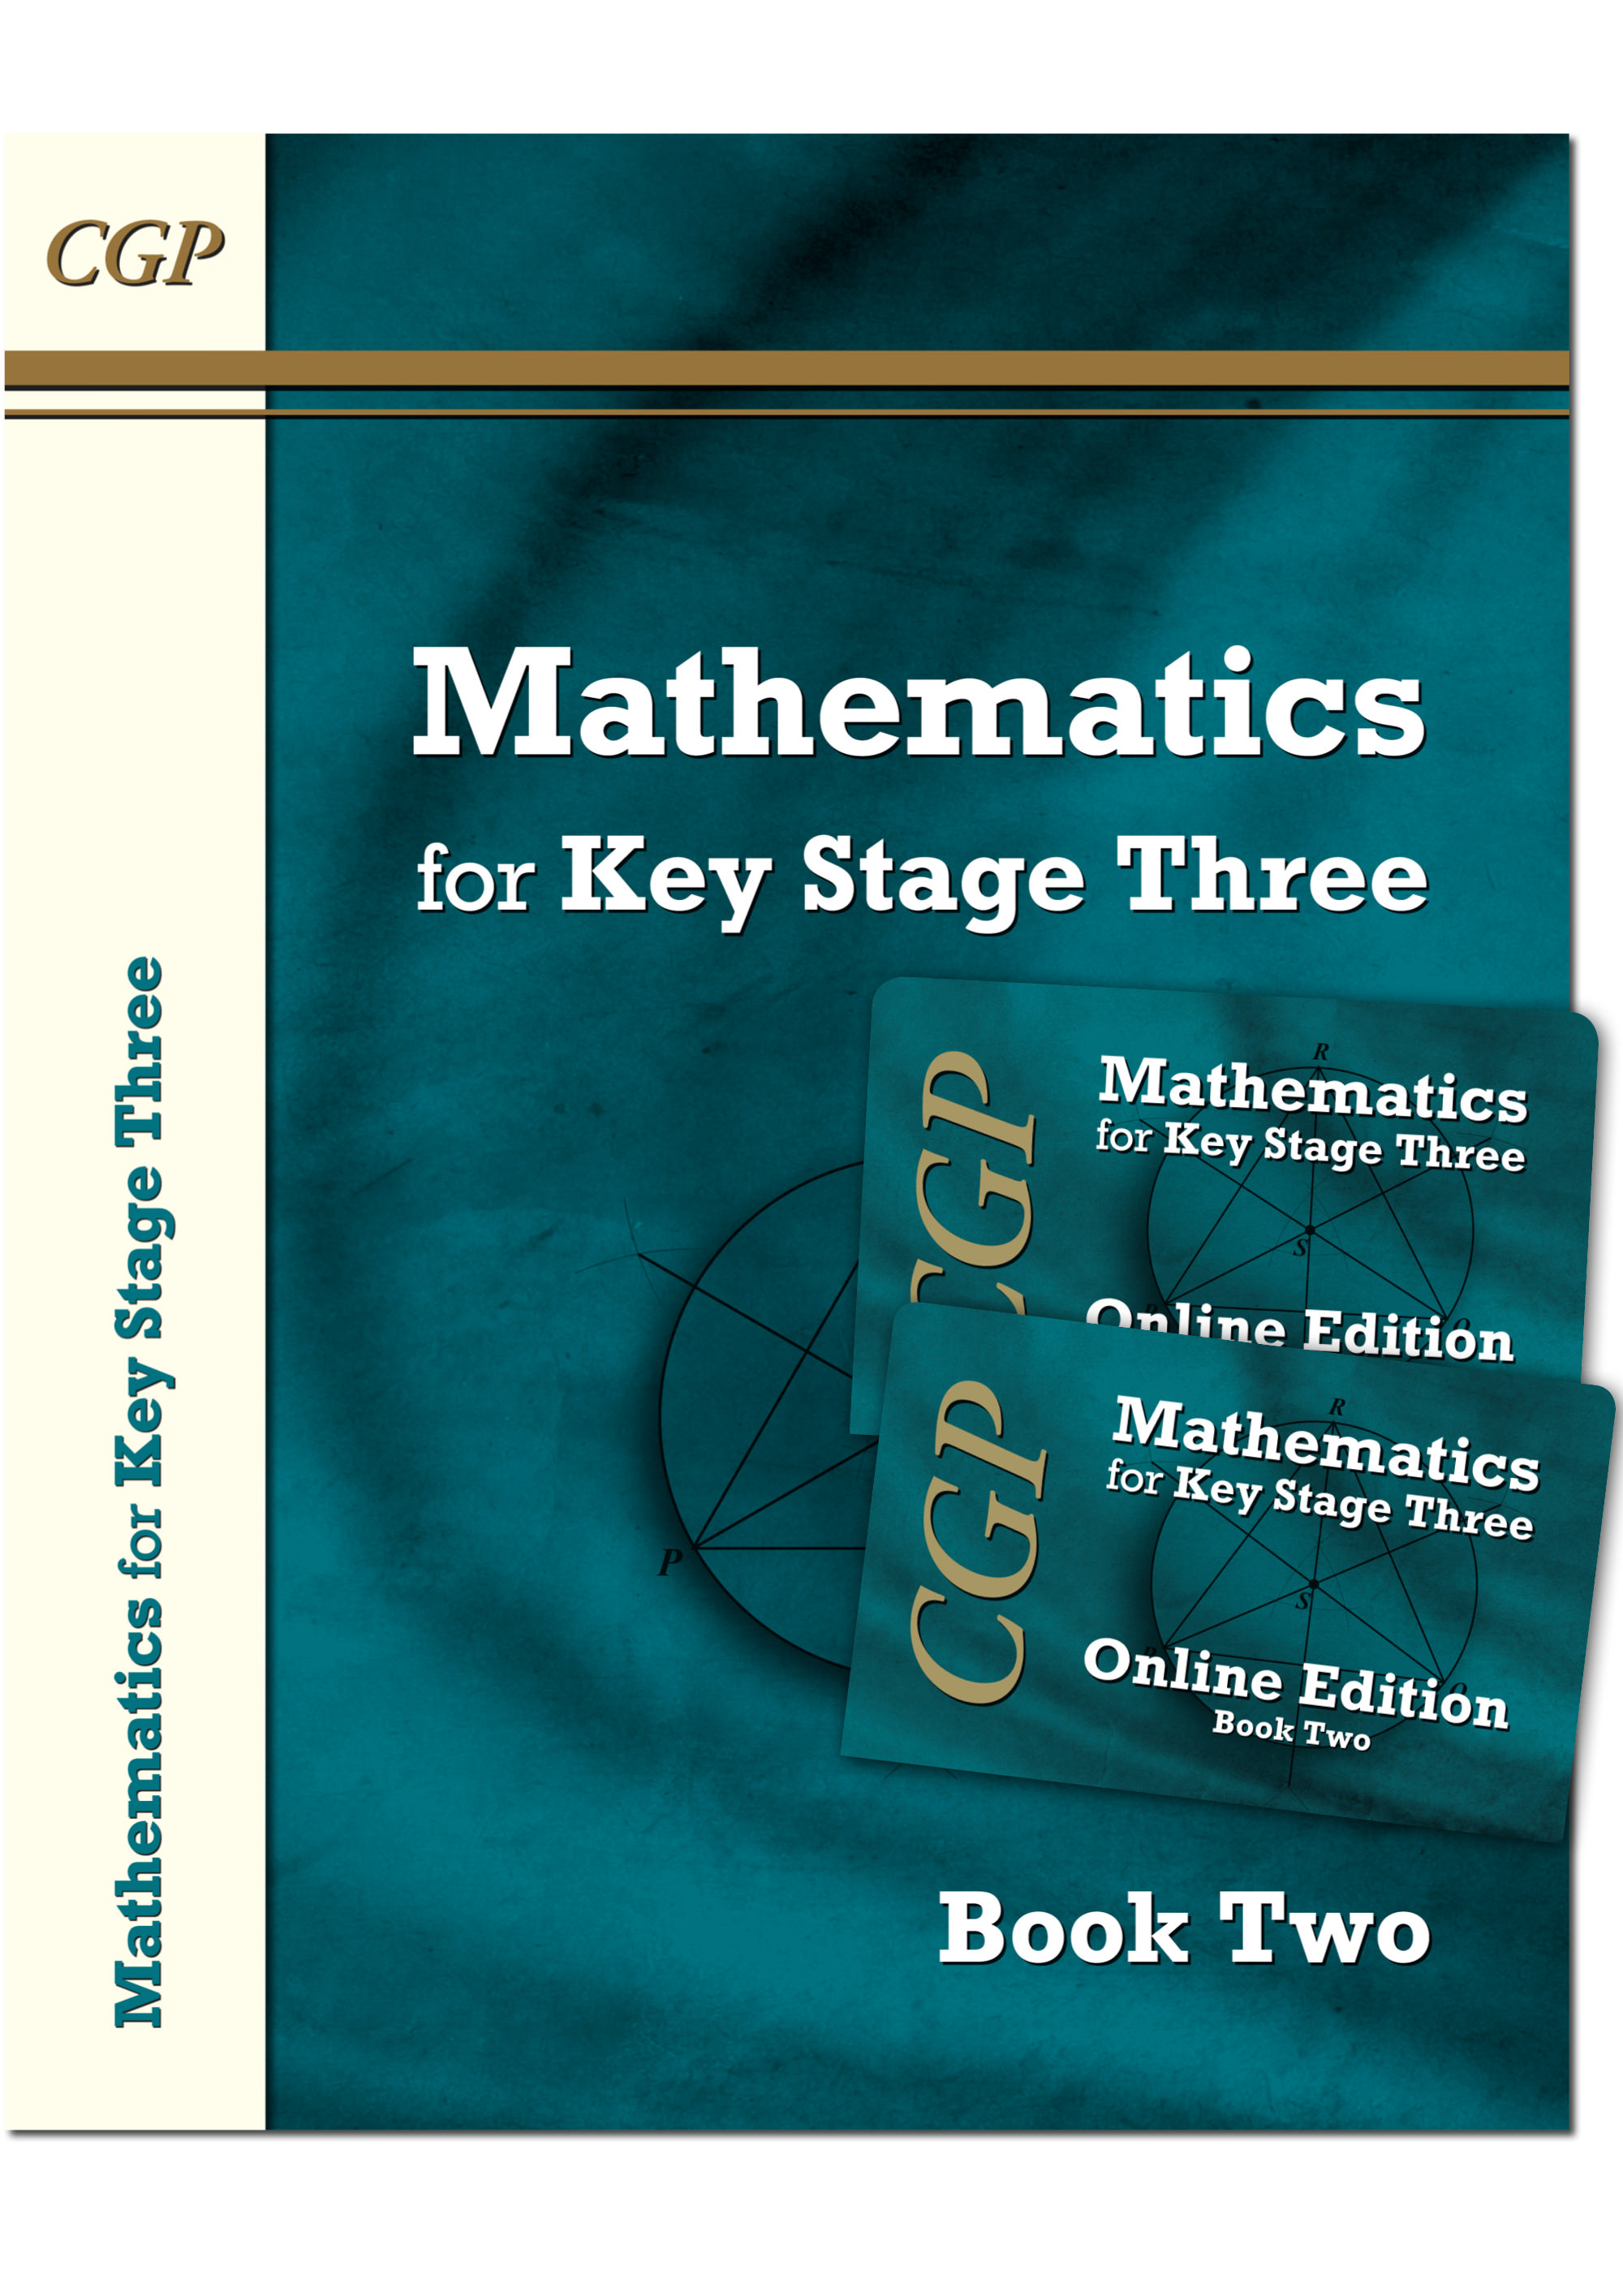 M2NNB31 - KS3 Maths Textbook 2 plus two Online Editions (without answers)